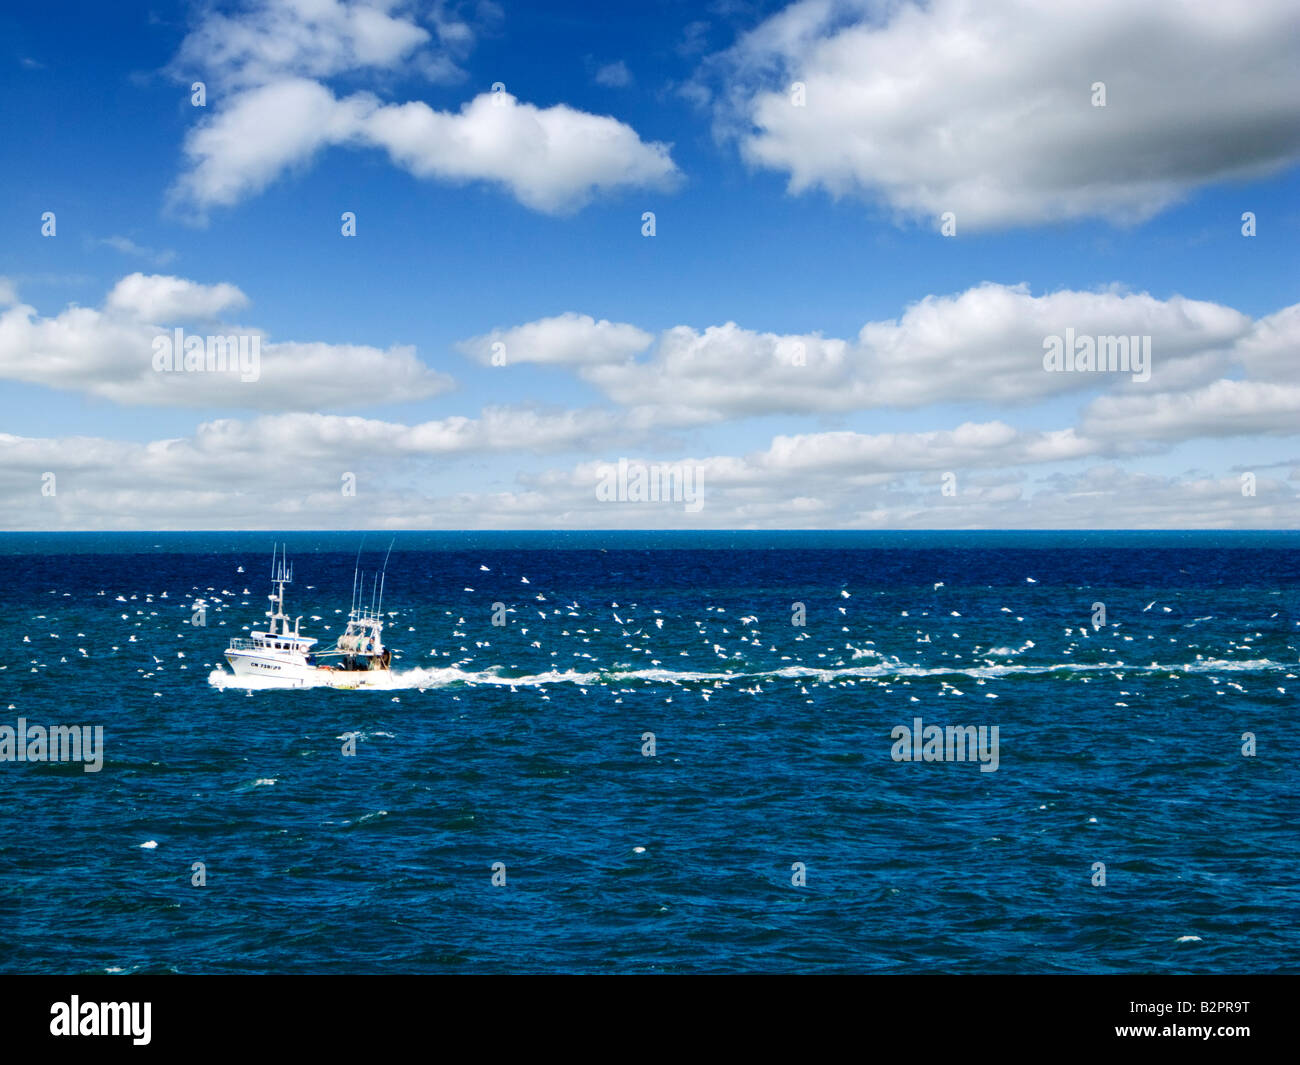 Small fishing boat trawler heading back to port with hundreds of gulls behind in his wake, Europe - Stock Image